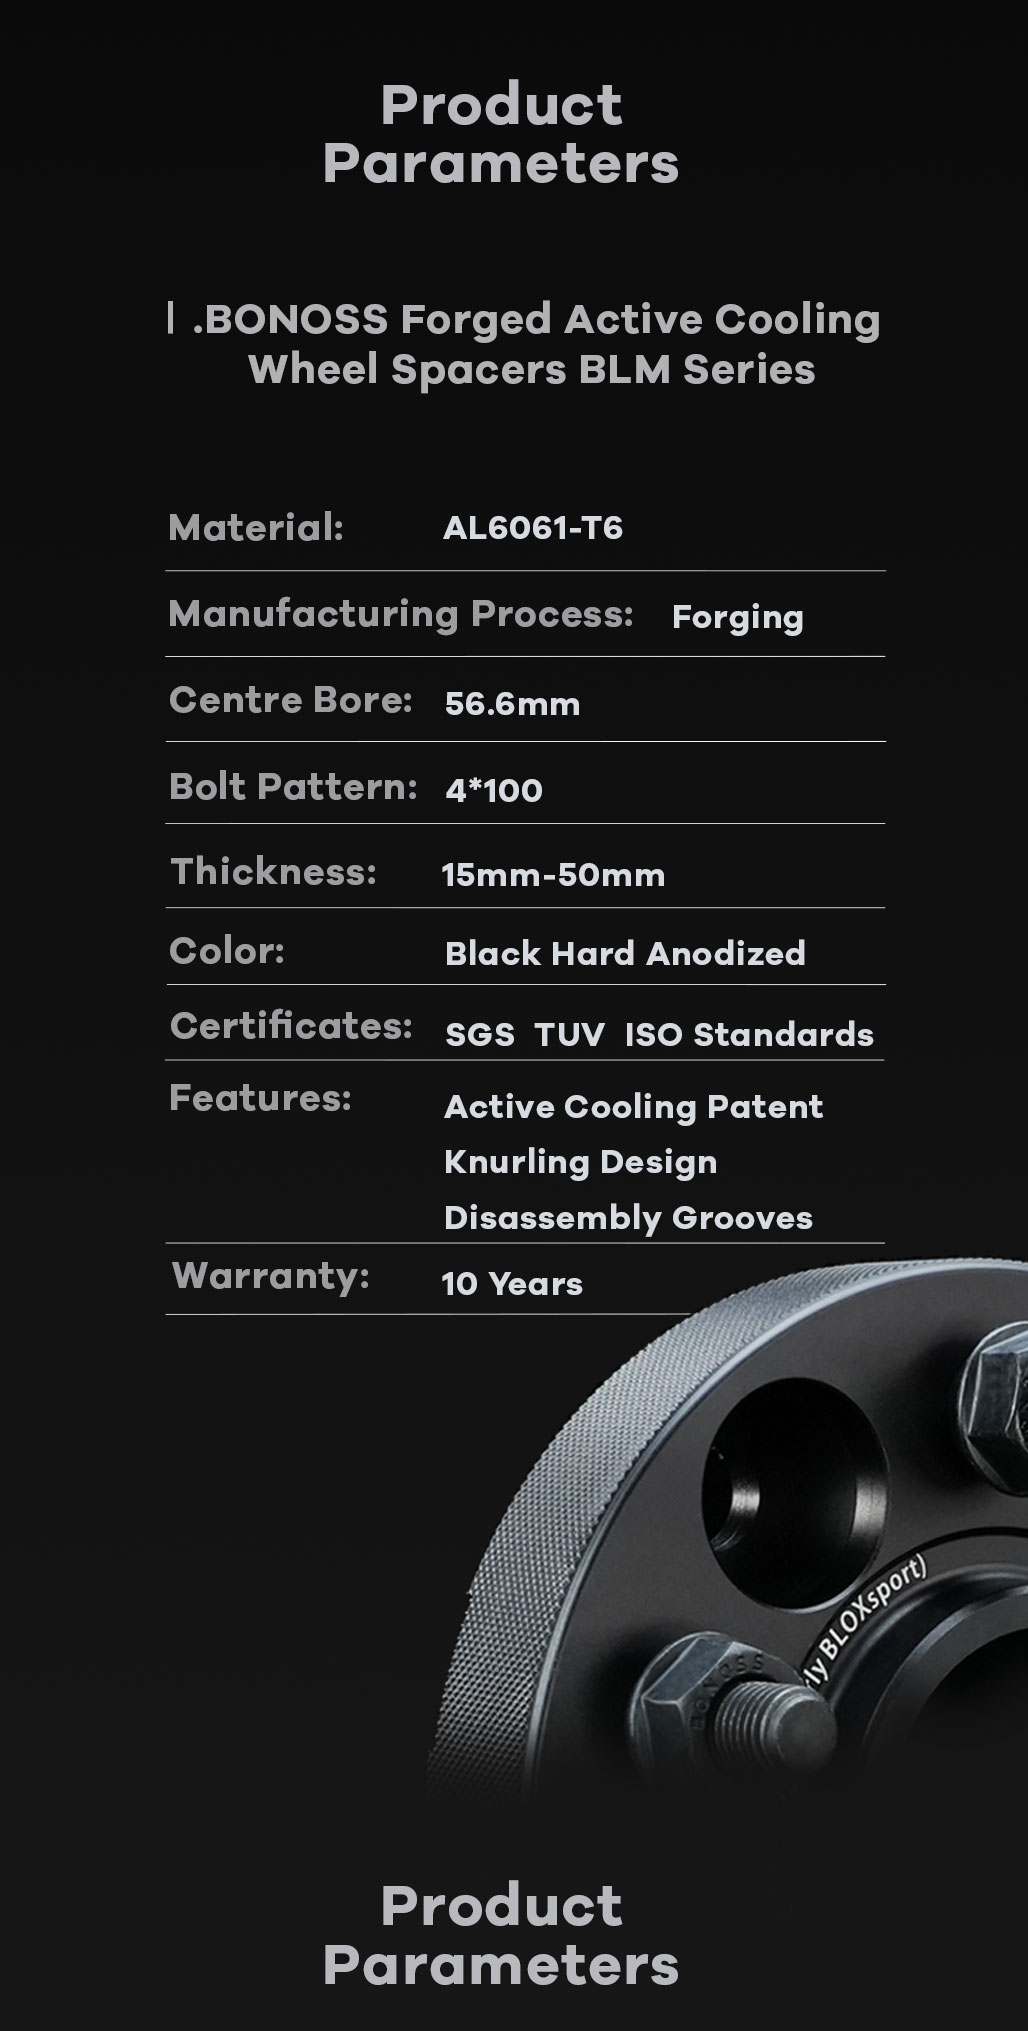 BONOSS Forged Active Cooling Hubcentric Wheel Spacers 4 Lugs Wheel Adapters AL6061-T6 Material CB56.6